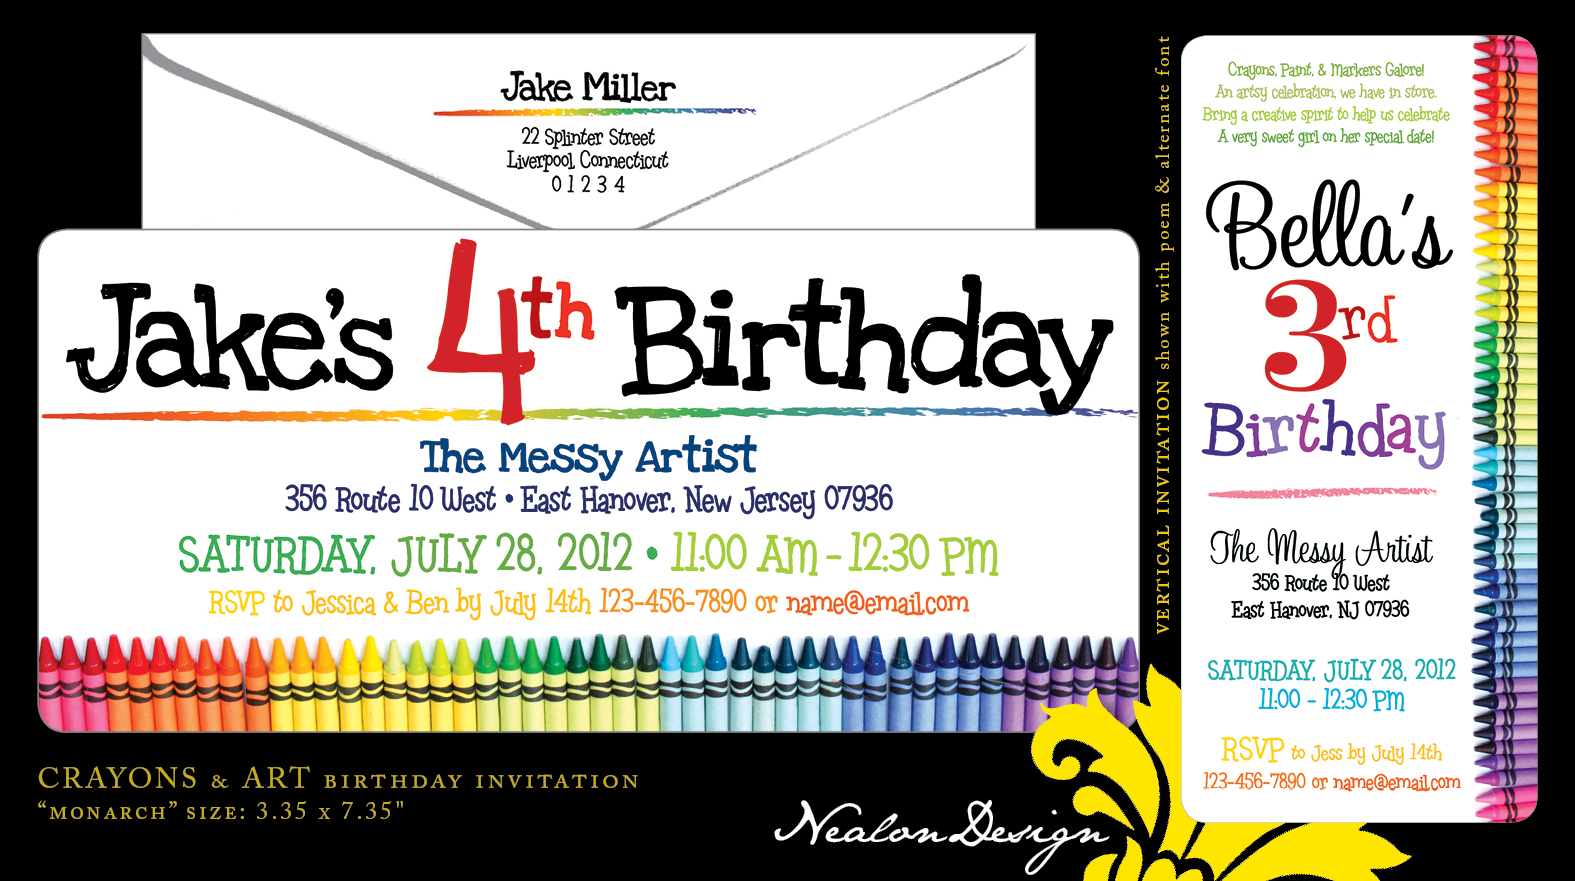 Nealon design crayons art birthday invitation crayons art birthday invitation i may have designed these for a 4 year old little boy stopboris Image collections